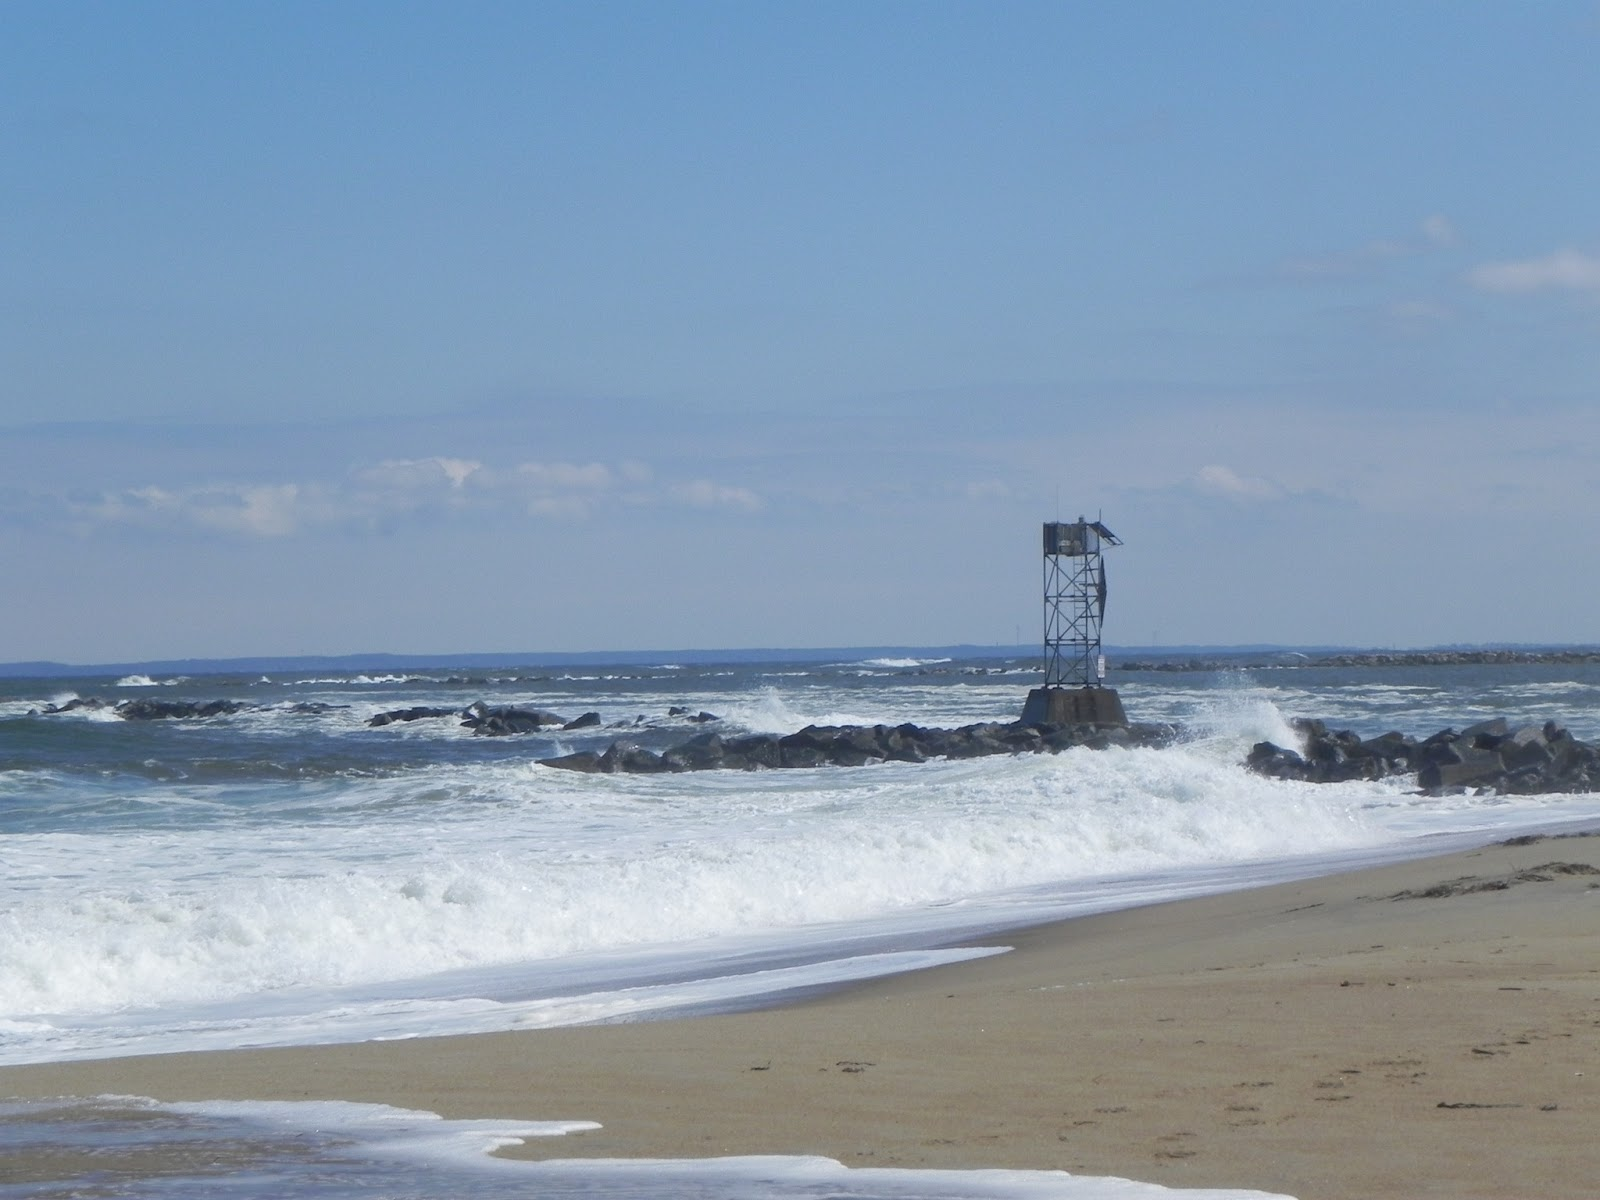 Salisbury Beach New Hampshire Enjoying The Large Waves And Collecting Sea Gl Mini Pieces Of Driftwood